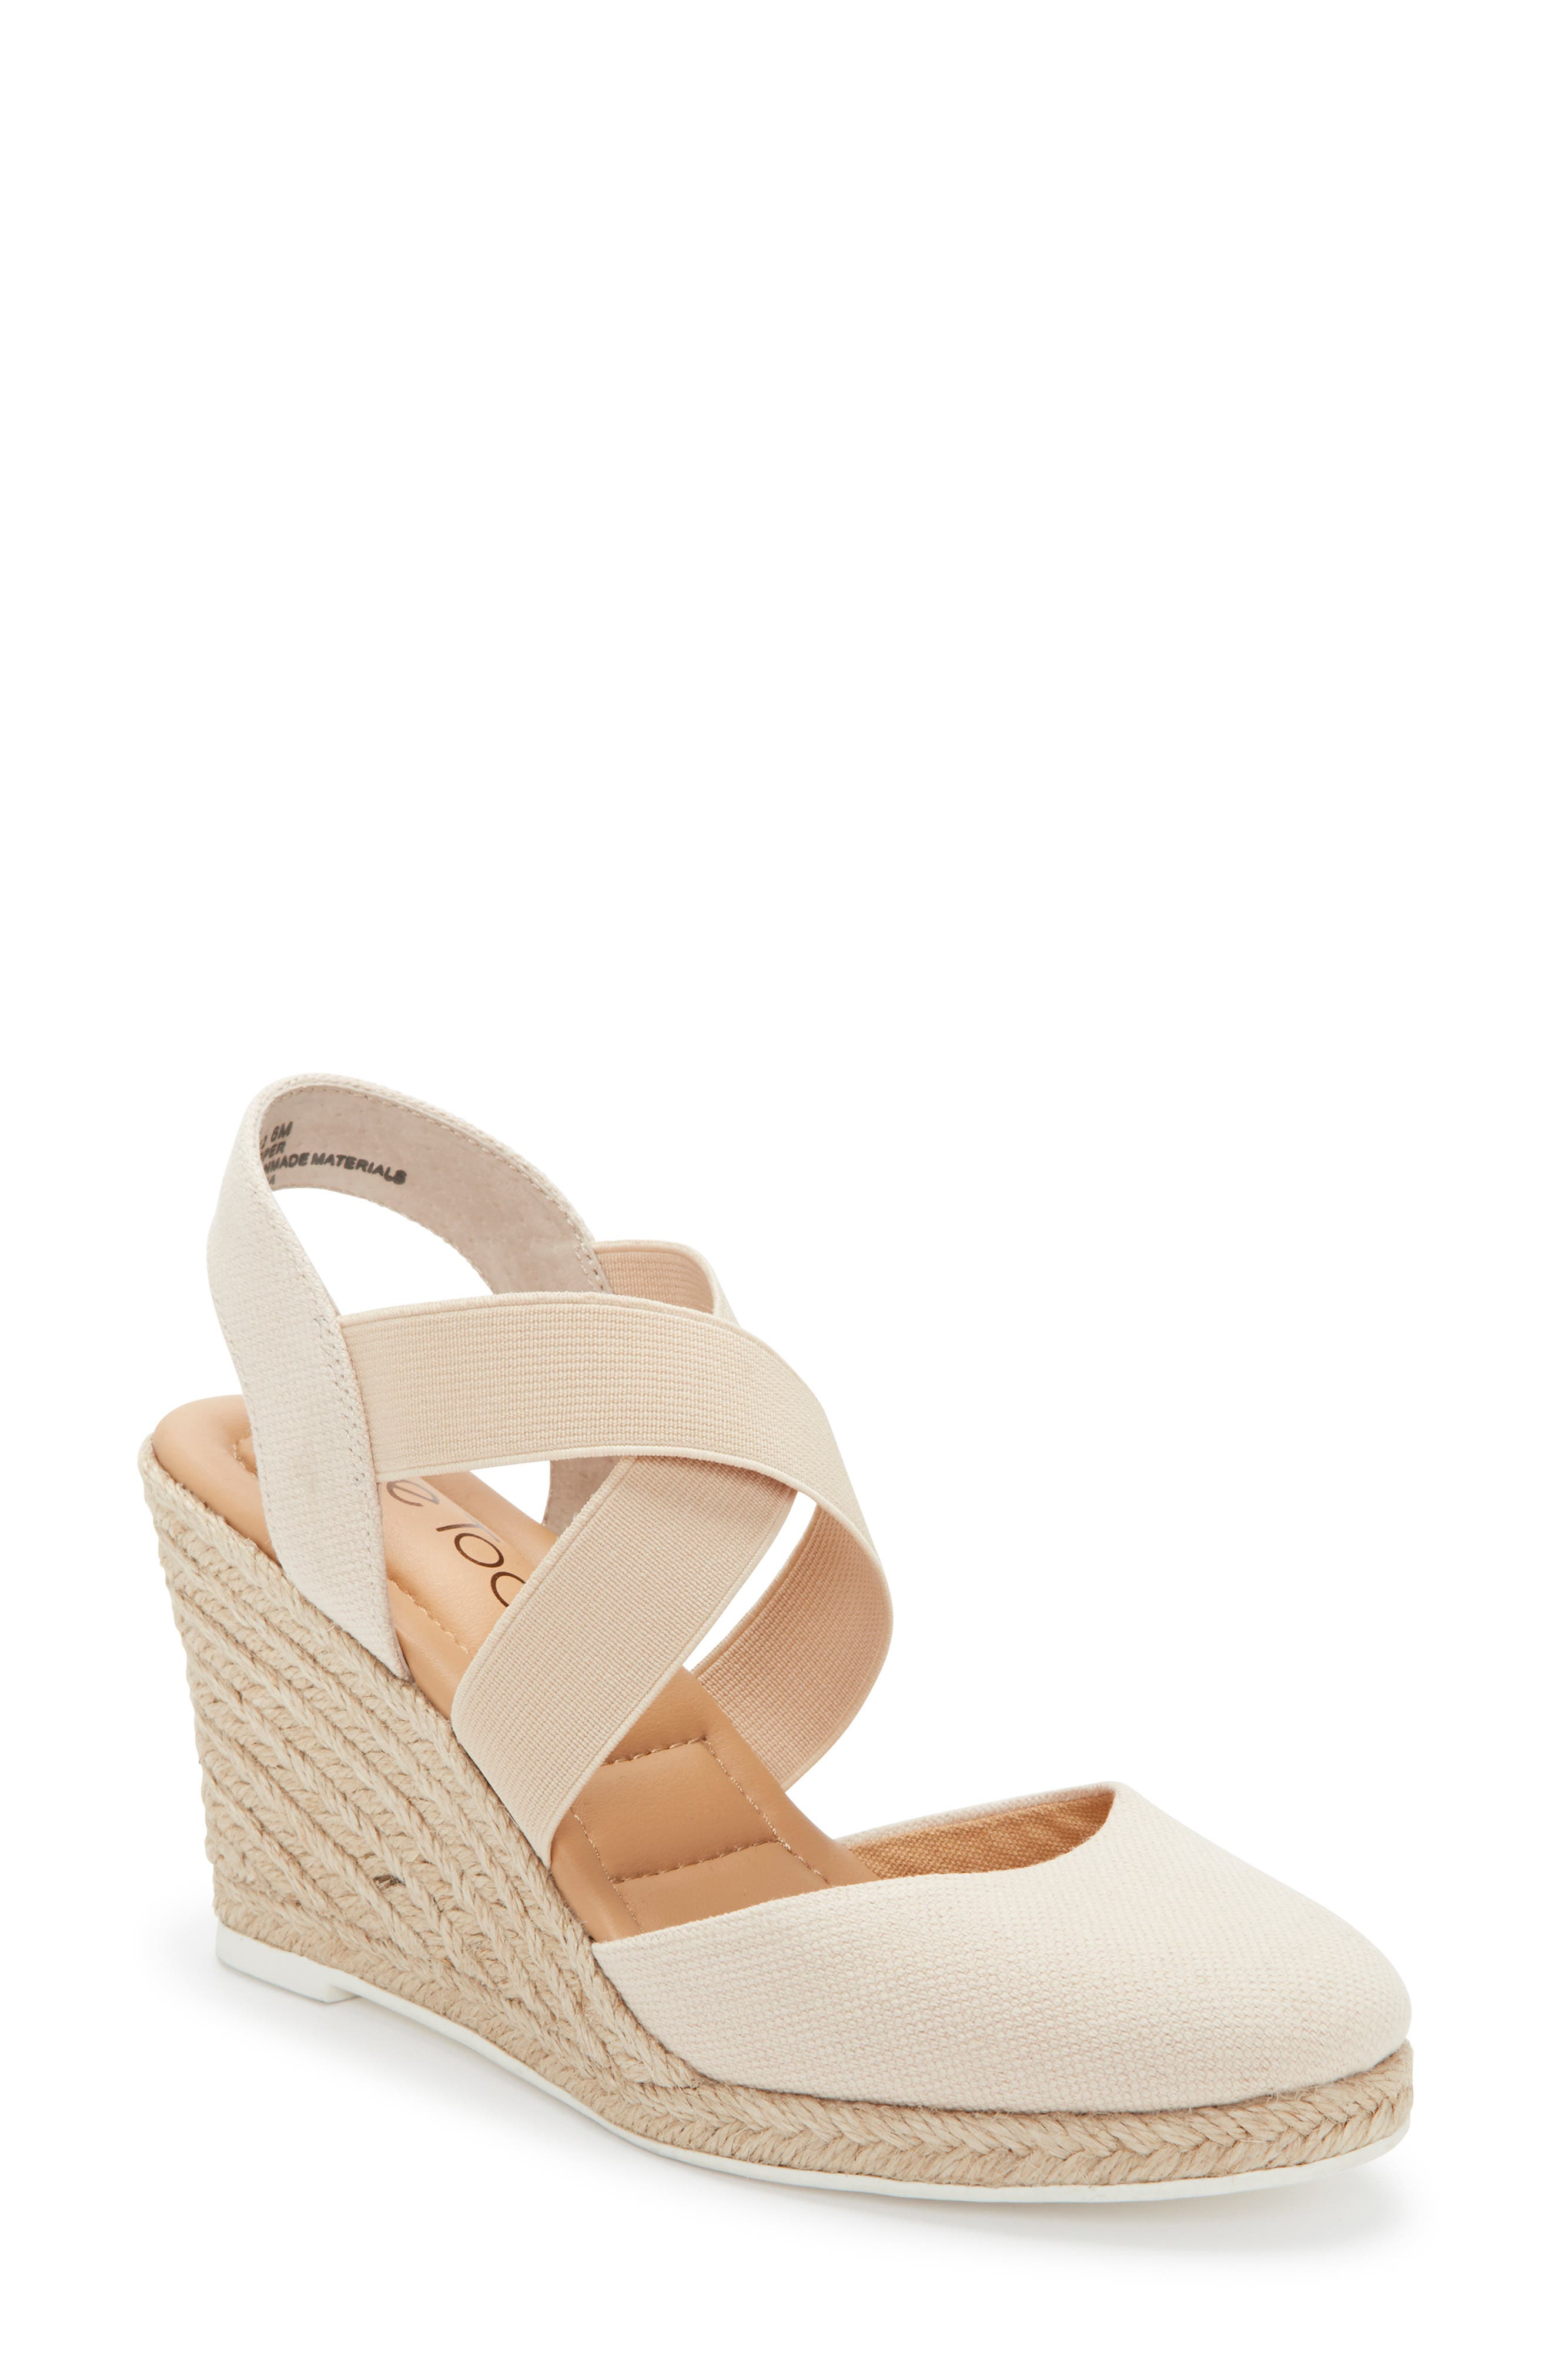 ME TOO Brinley Espadrille Wedge, Main, color, NATURAL CANVAS